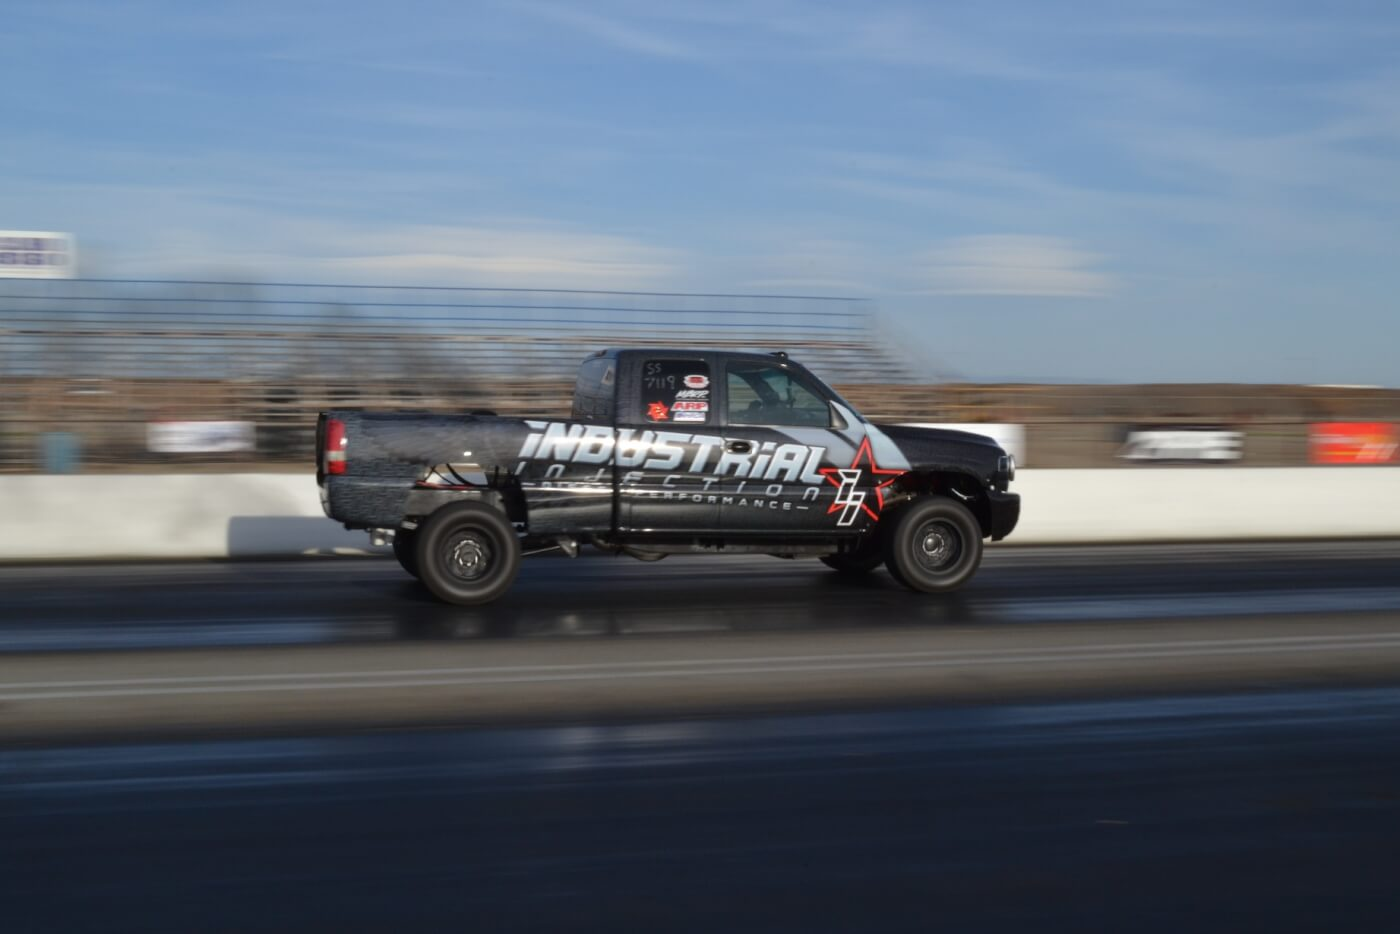 Brett Williams from Industrial Injection in his 2001 Chevy Duramax.